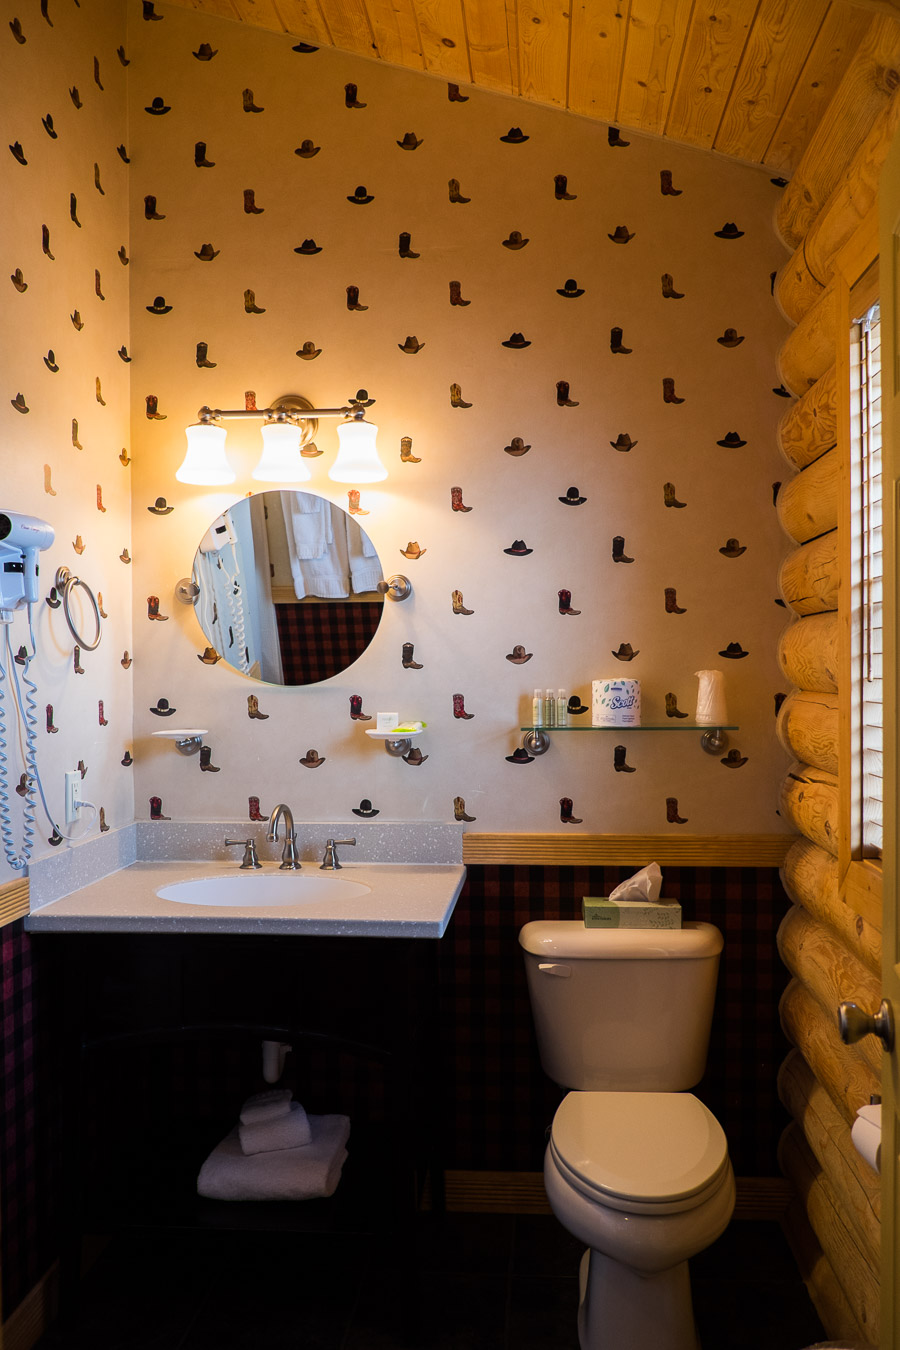 Loved the cowboy boot wallpaper!